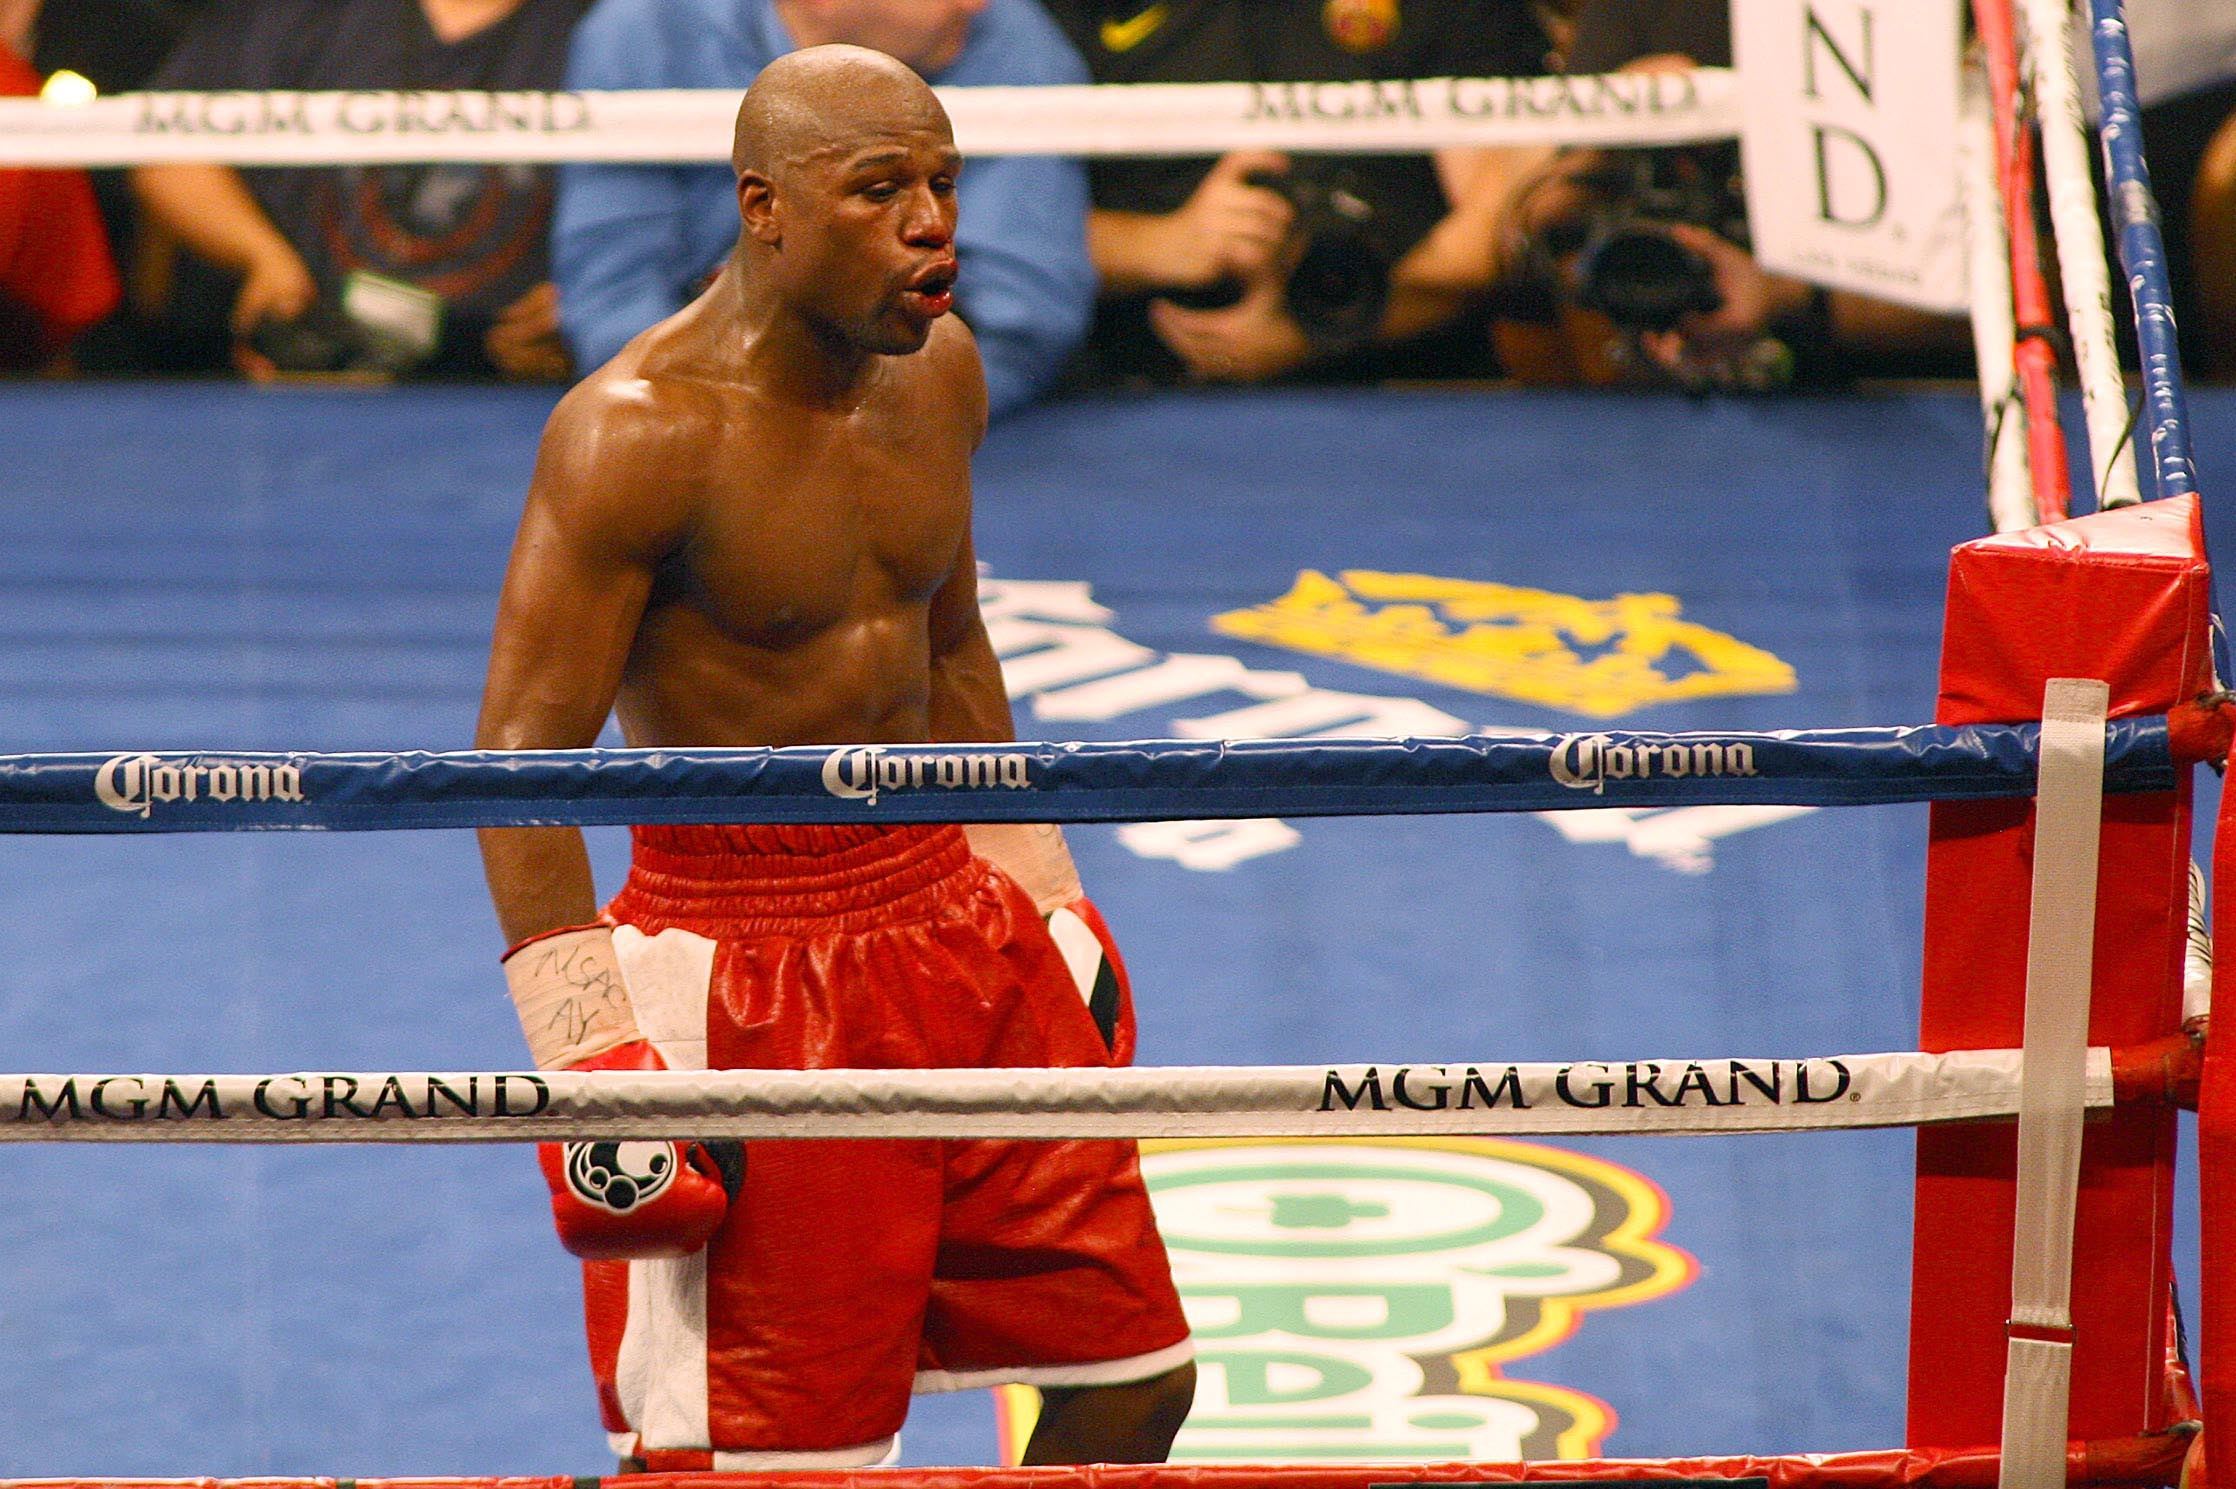 Mayweather vs guerrero vegas betting odds over and under betting line on cactus bowl 2021